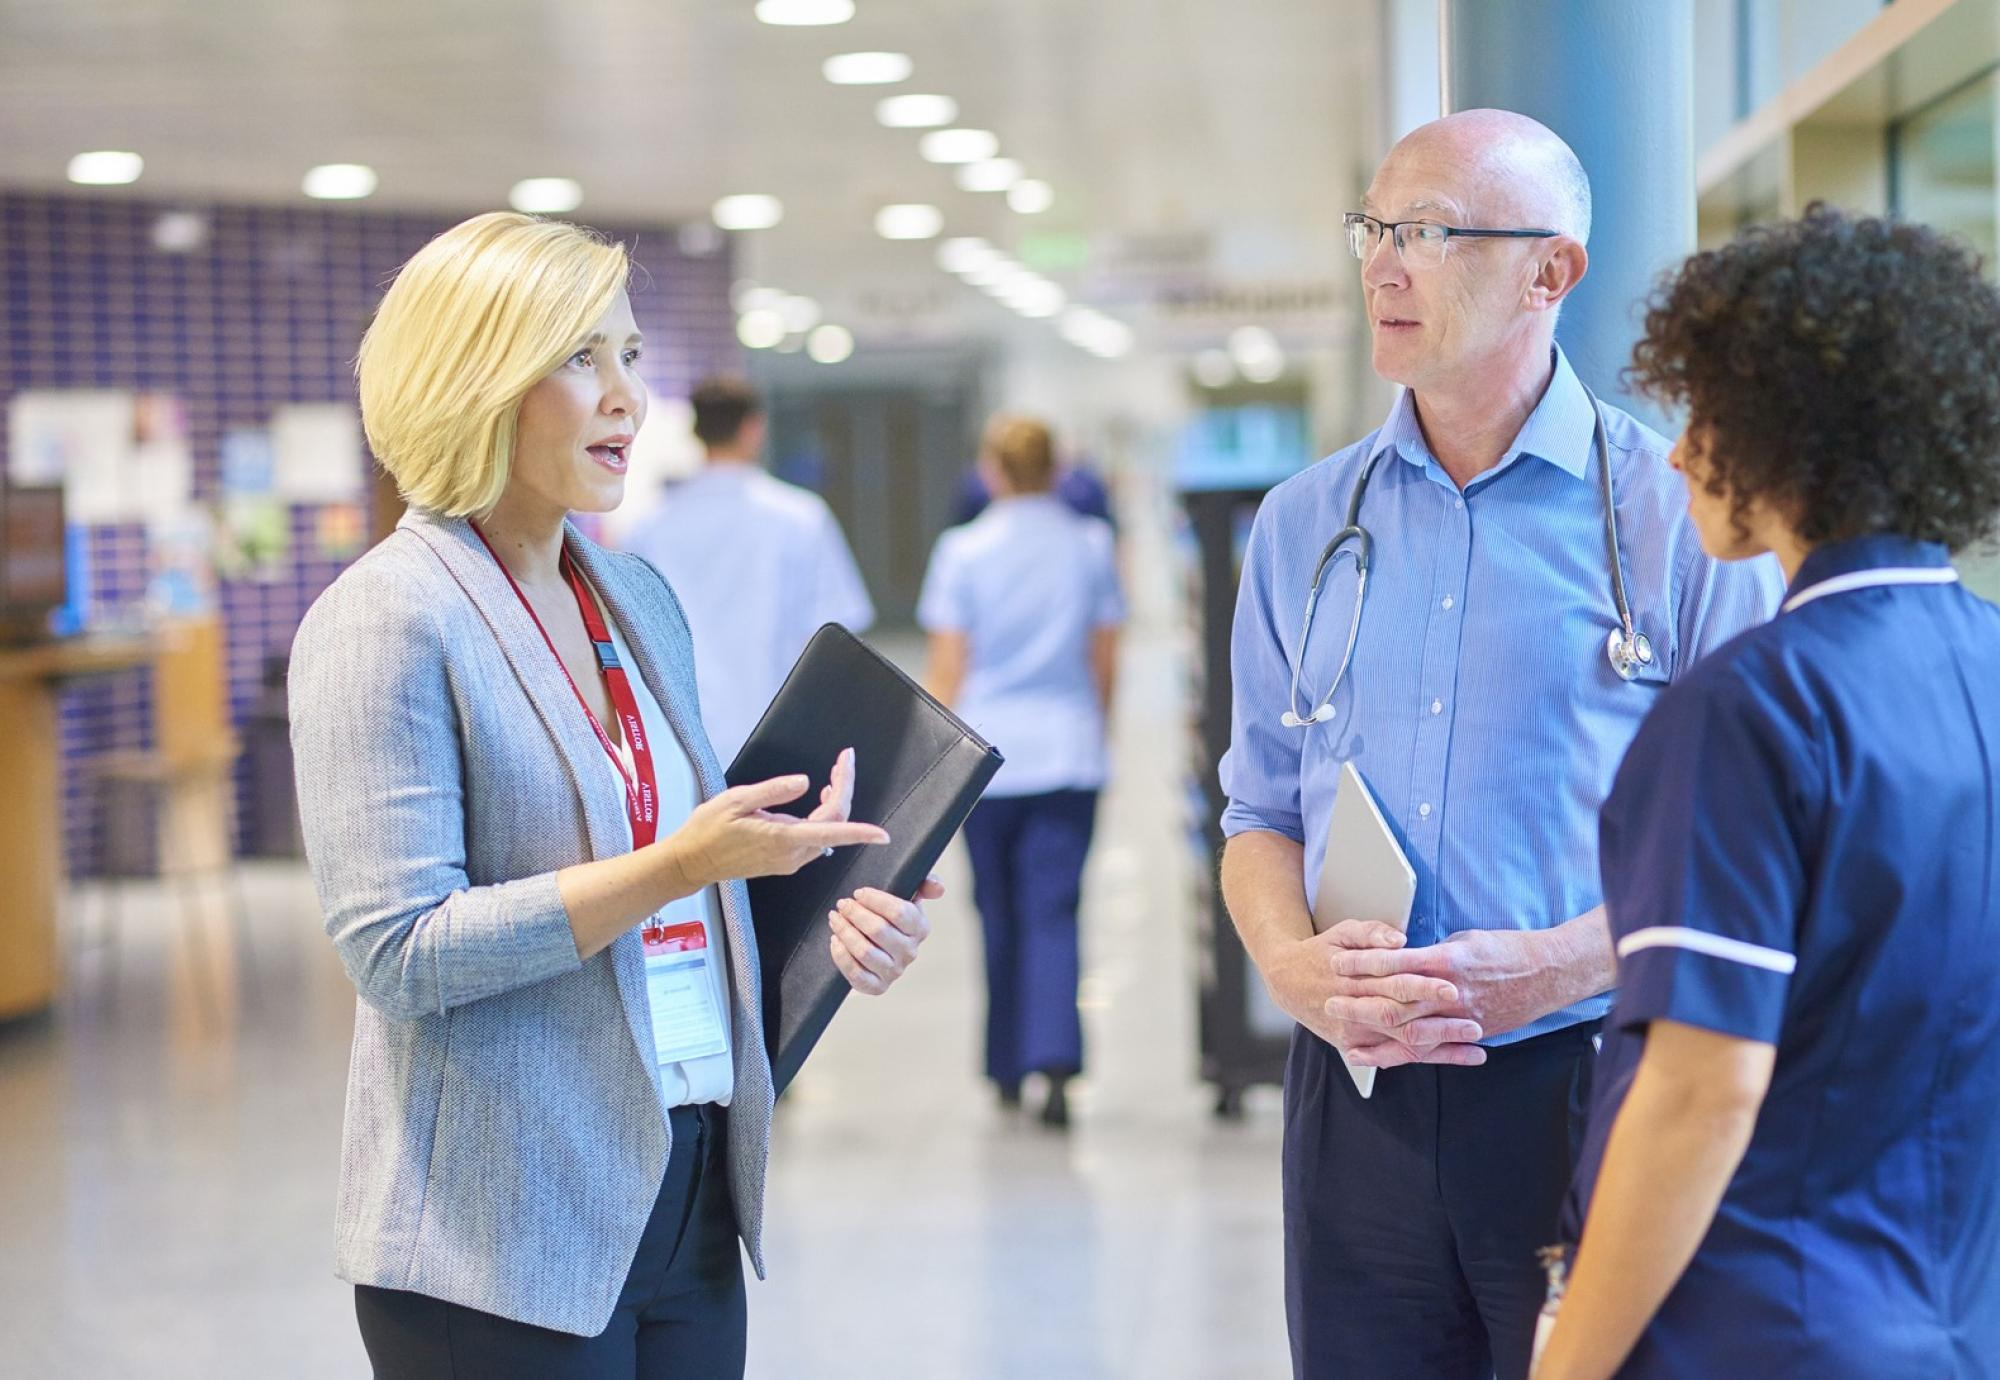 Hospital administrator in discussion with a doctor and nurse